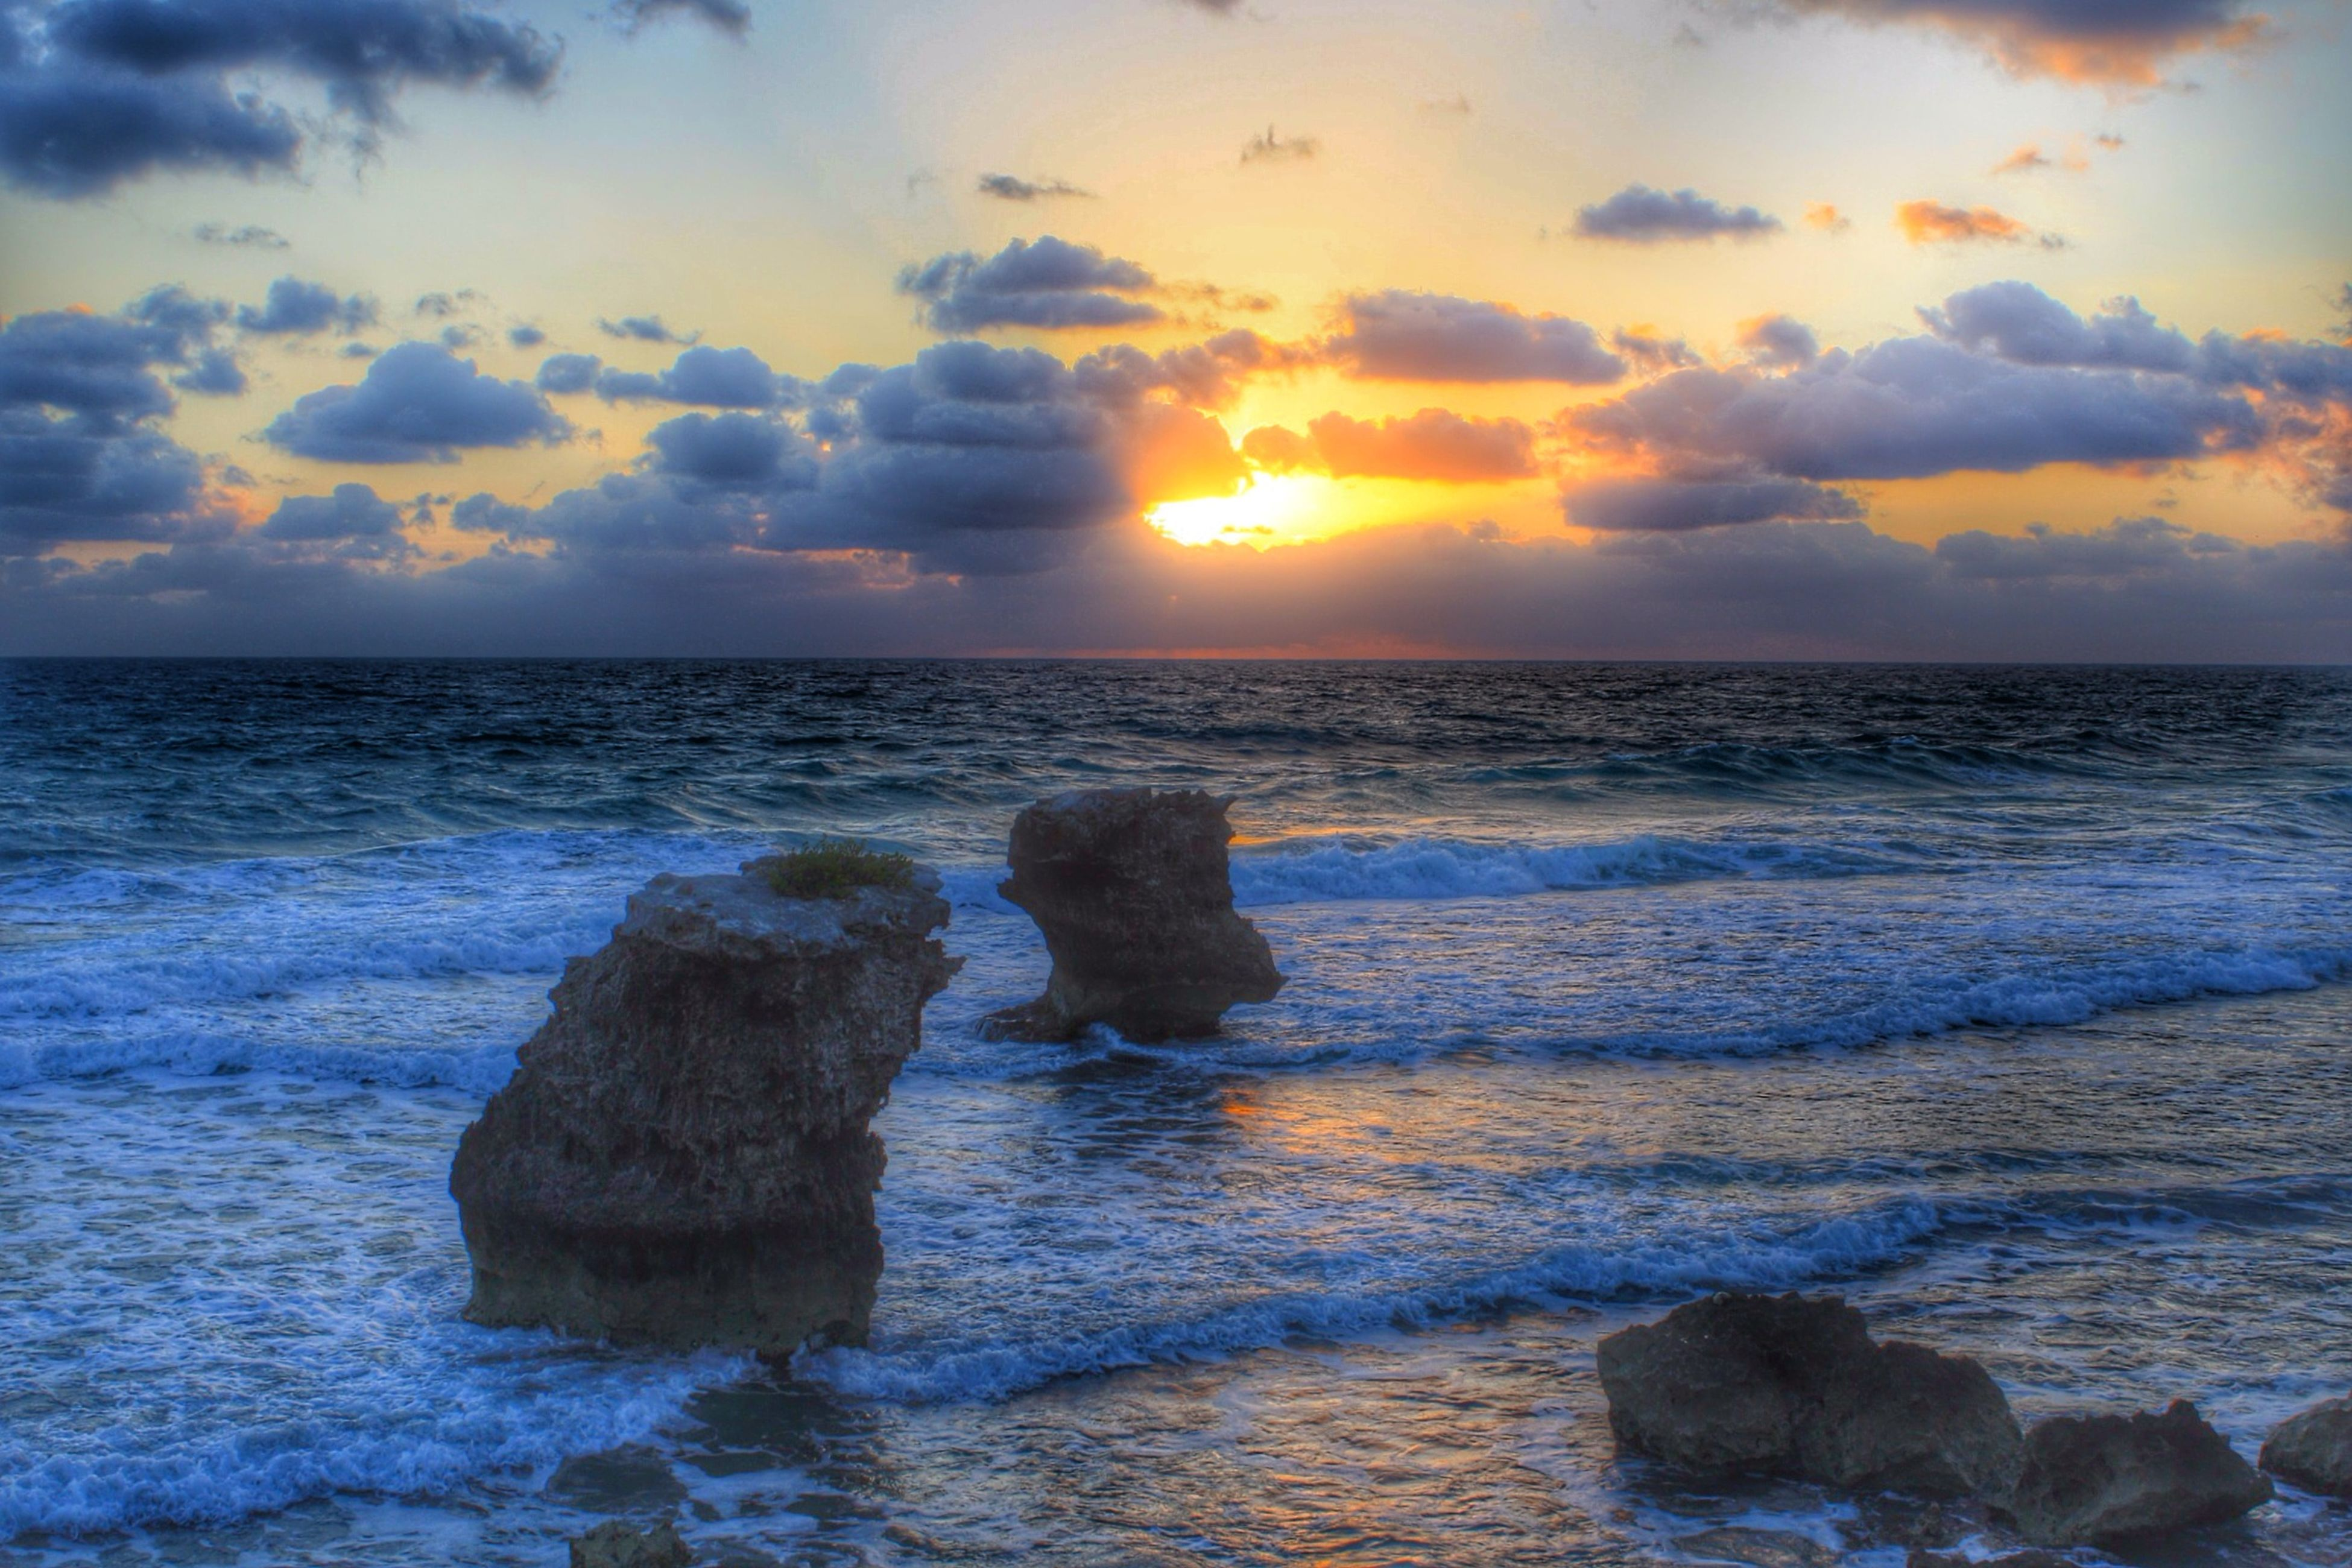 sea, horizon over water, water, sunset, scenics, sky, beauty in nature, tranquil scene, rock - object, tranquility, beach, nature, idyllic, shore, cloud - sky, wave, sun, rock formation, orange color, cloud